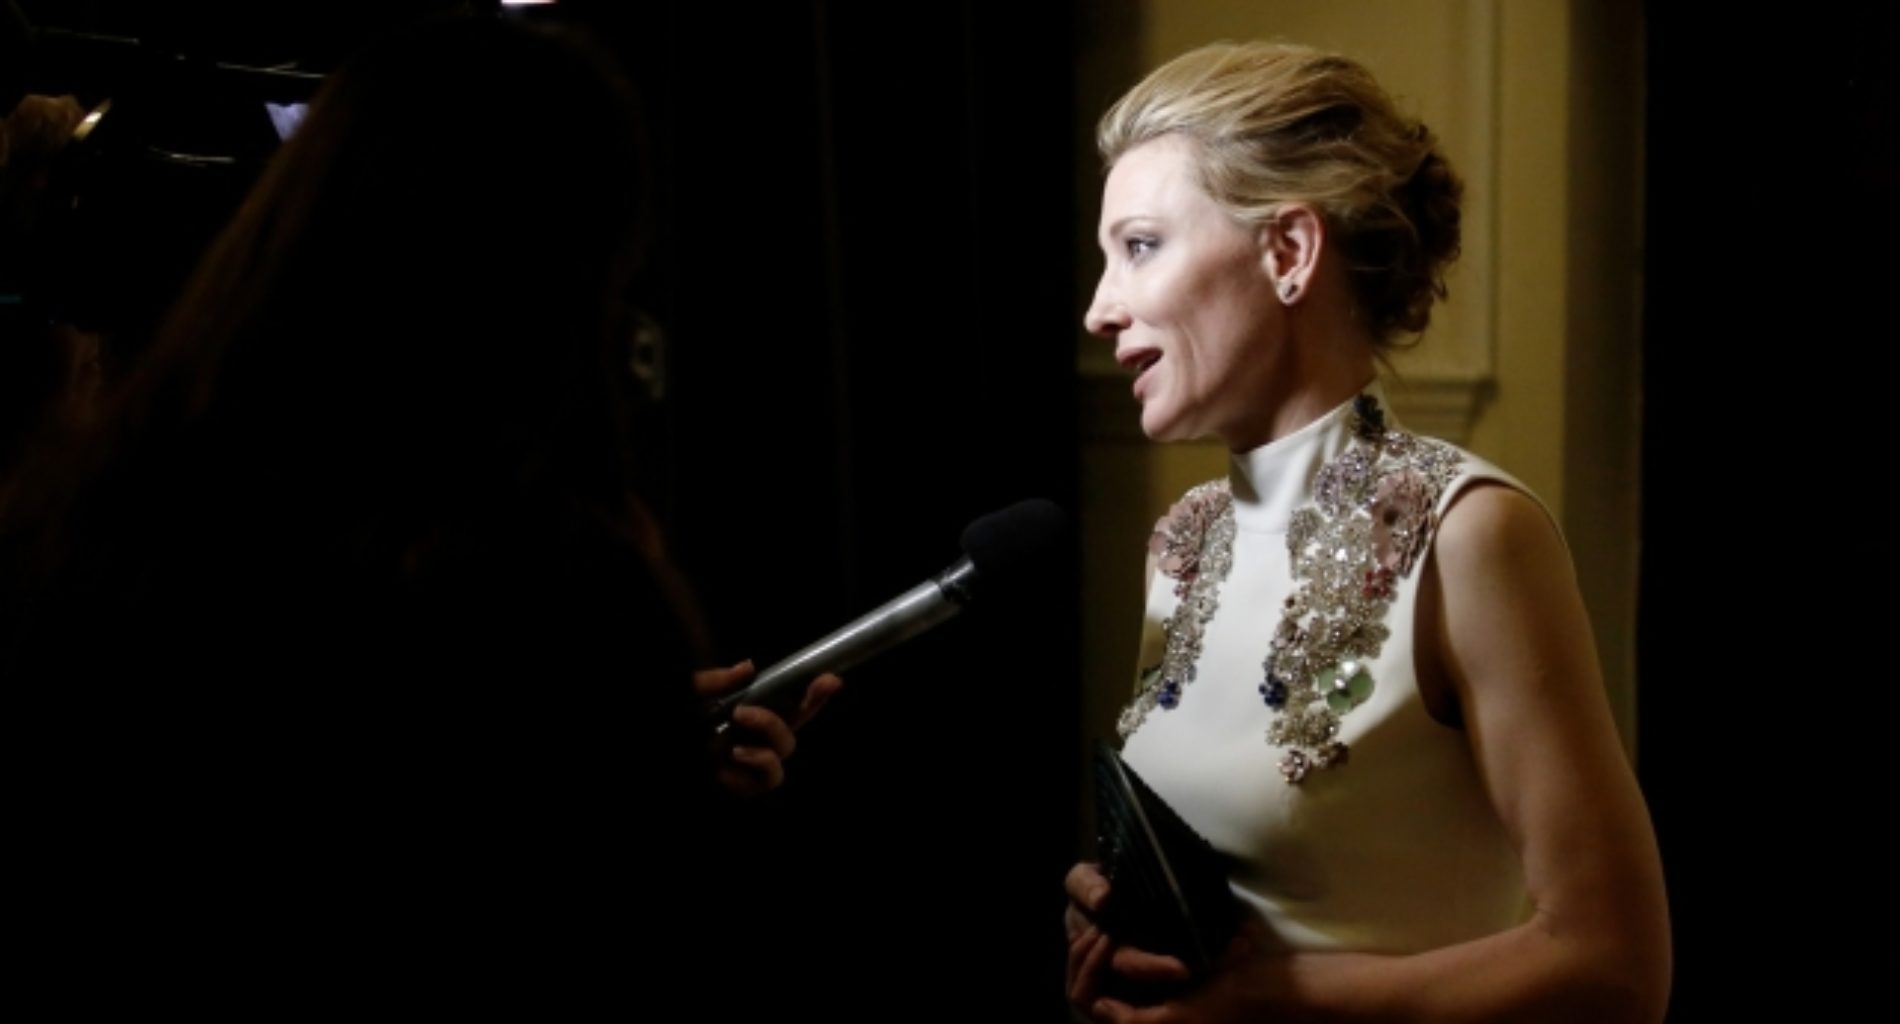 Cate Blanchett responds to the question about her sexuality